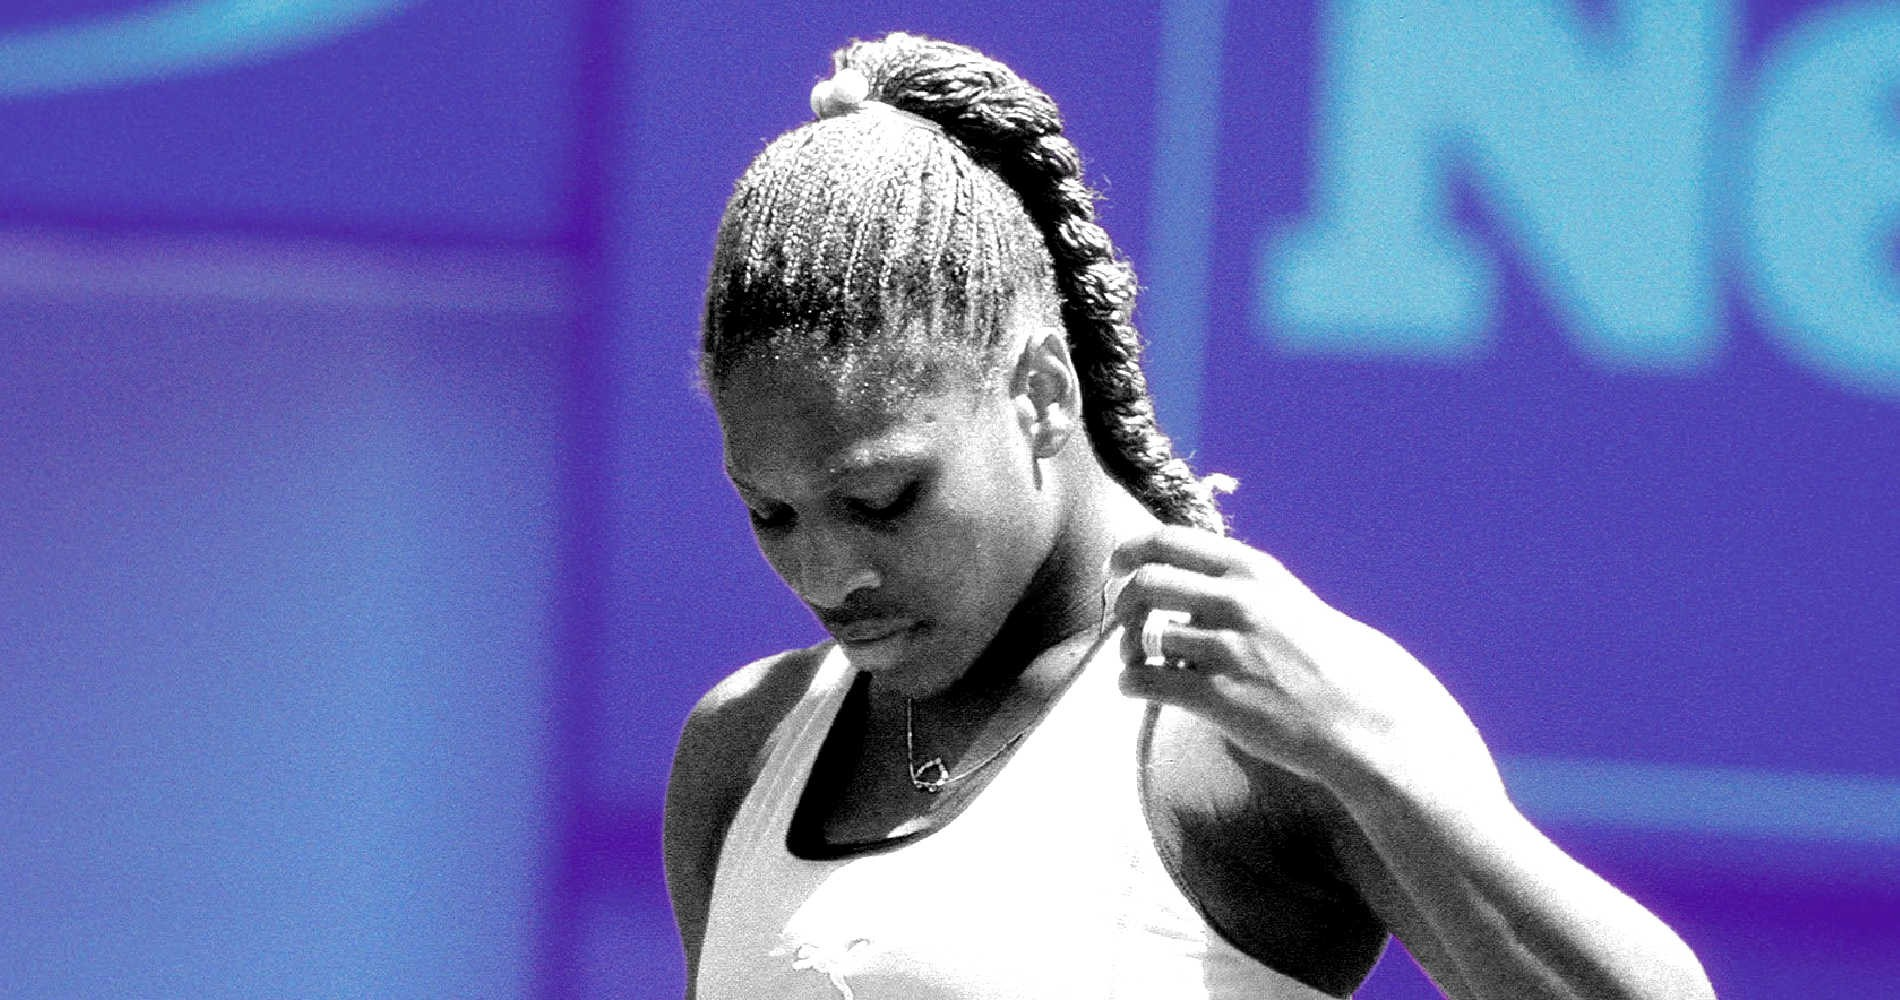 Serena Williams, On This Day